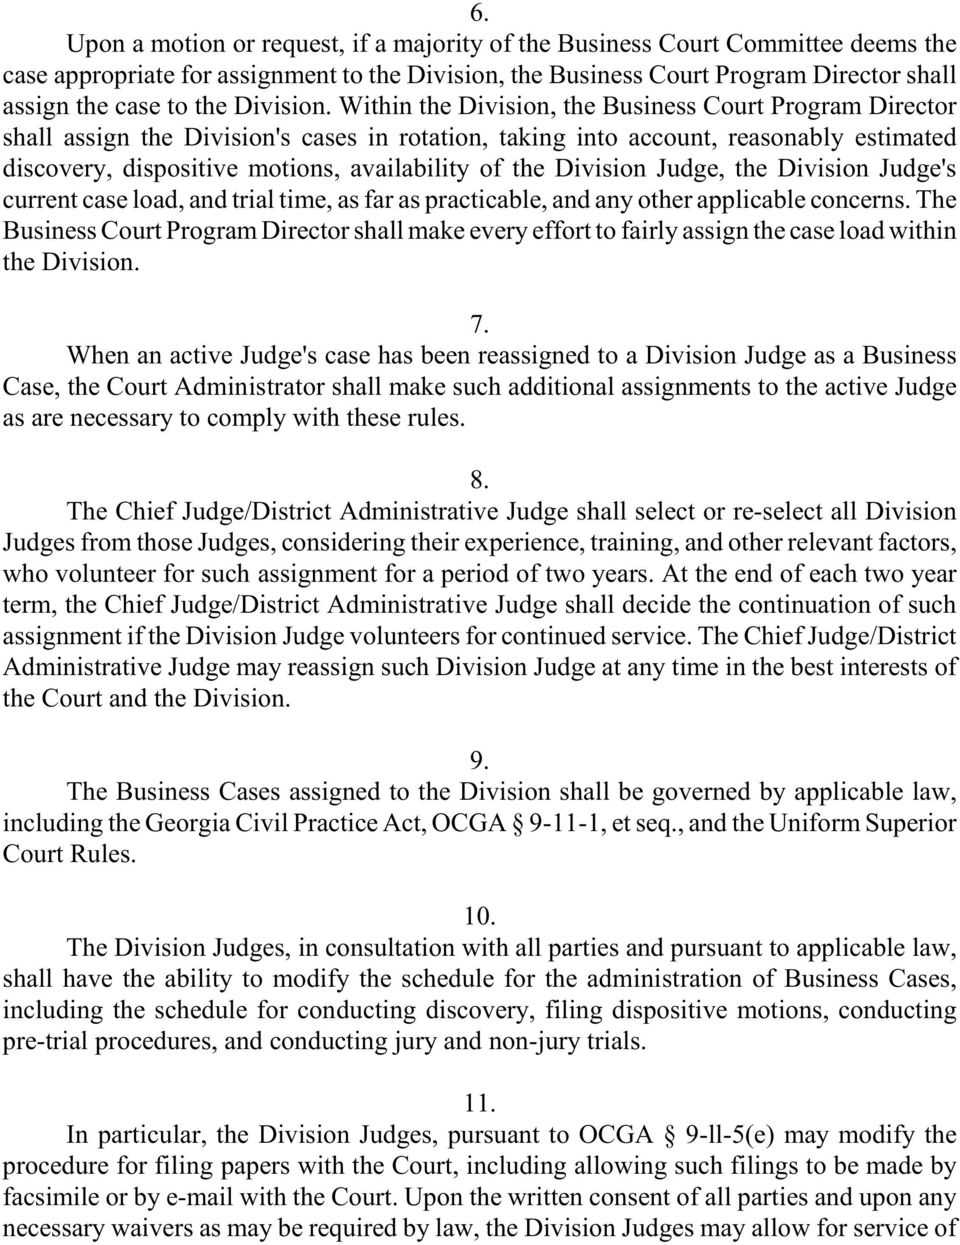 Within the Division, the Business Court Program Director shall assign the Division's cases in rotation, taking into account, reasonably estimated discovery, dispositive motions, availability of the